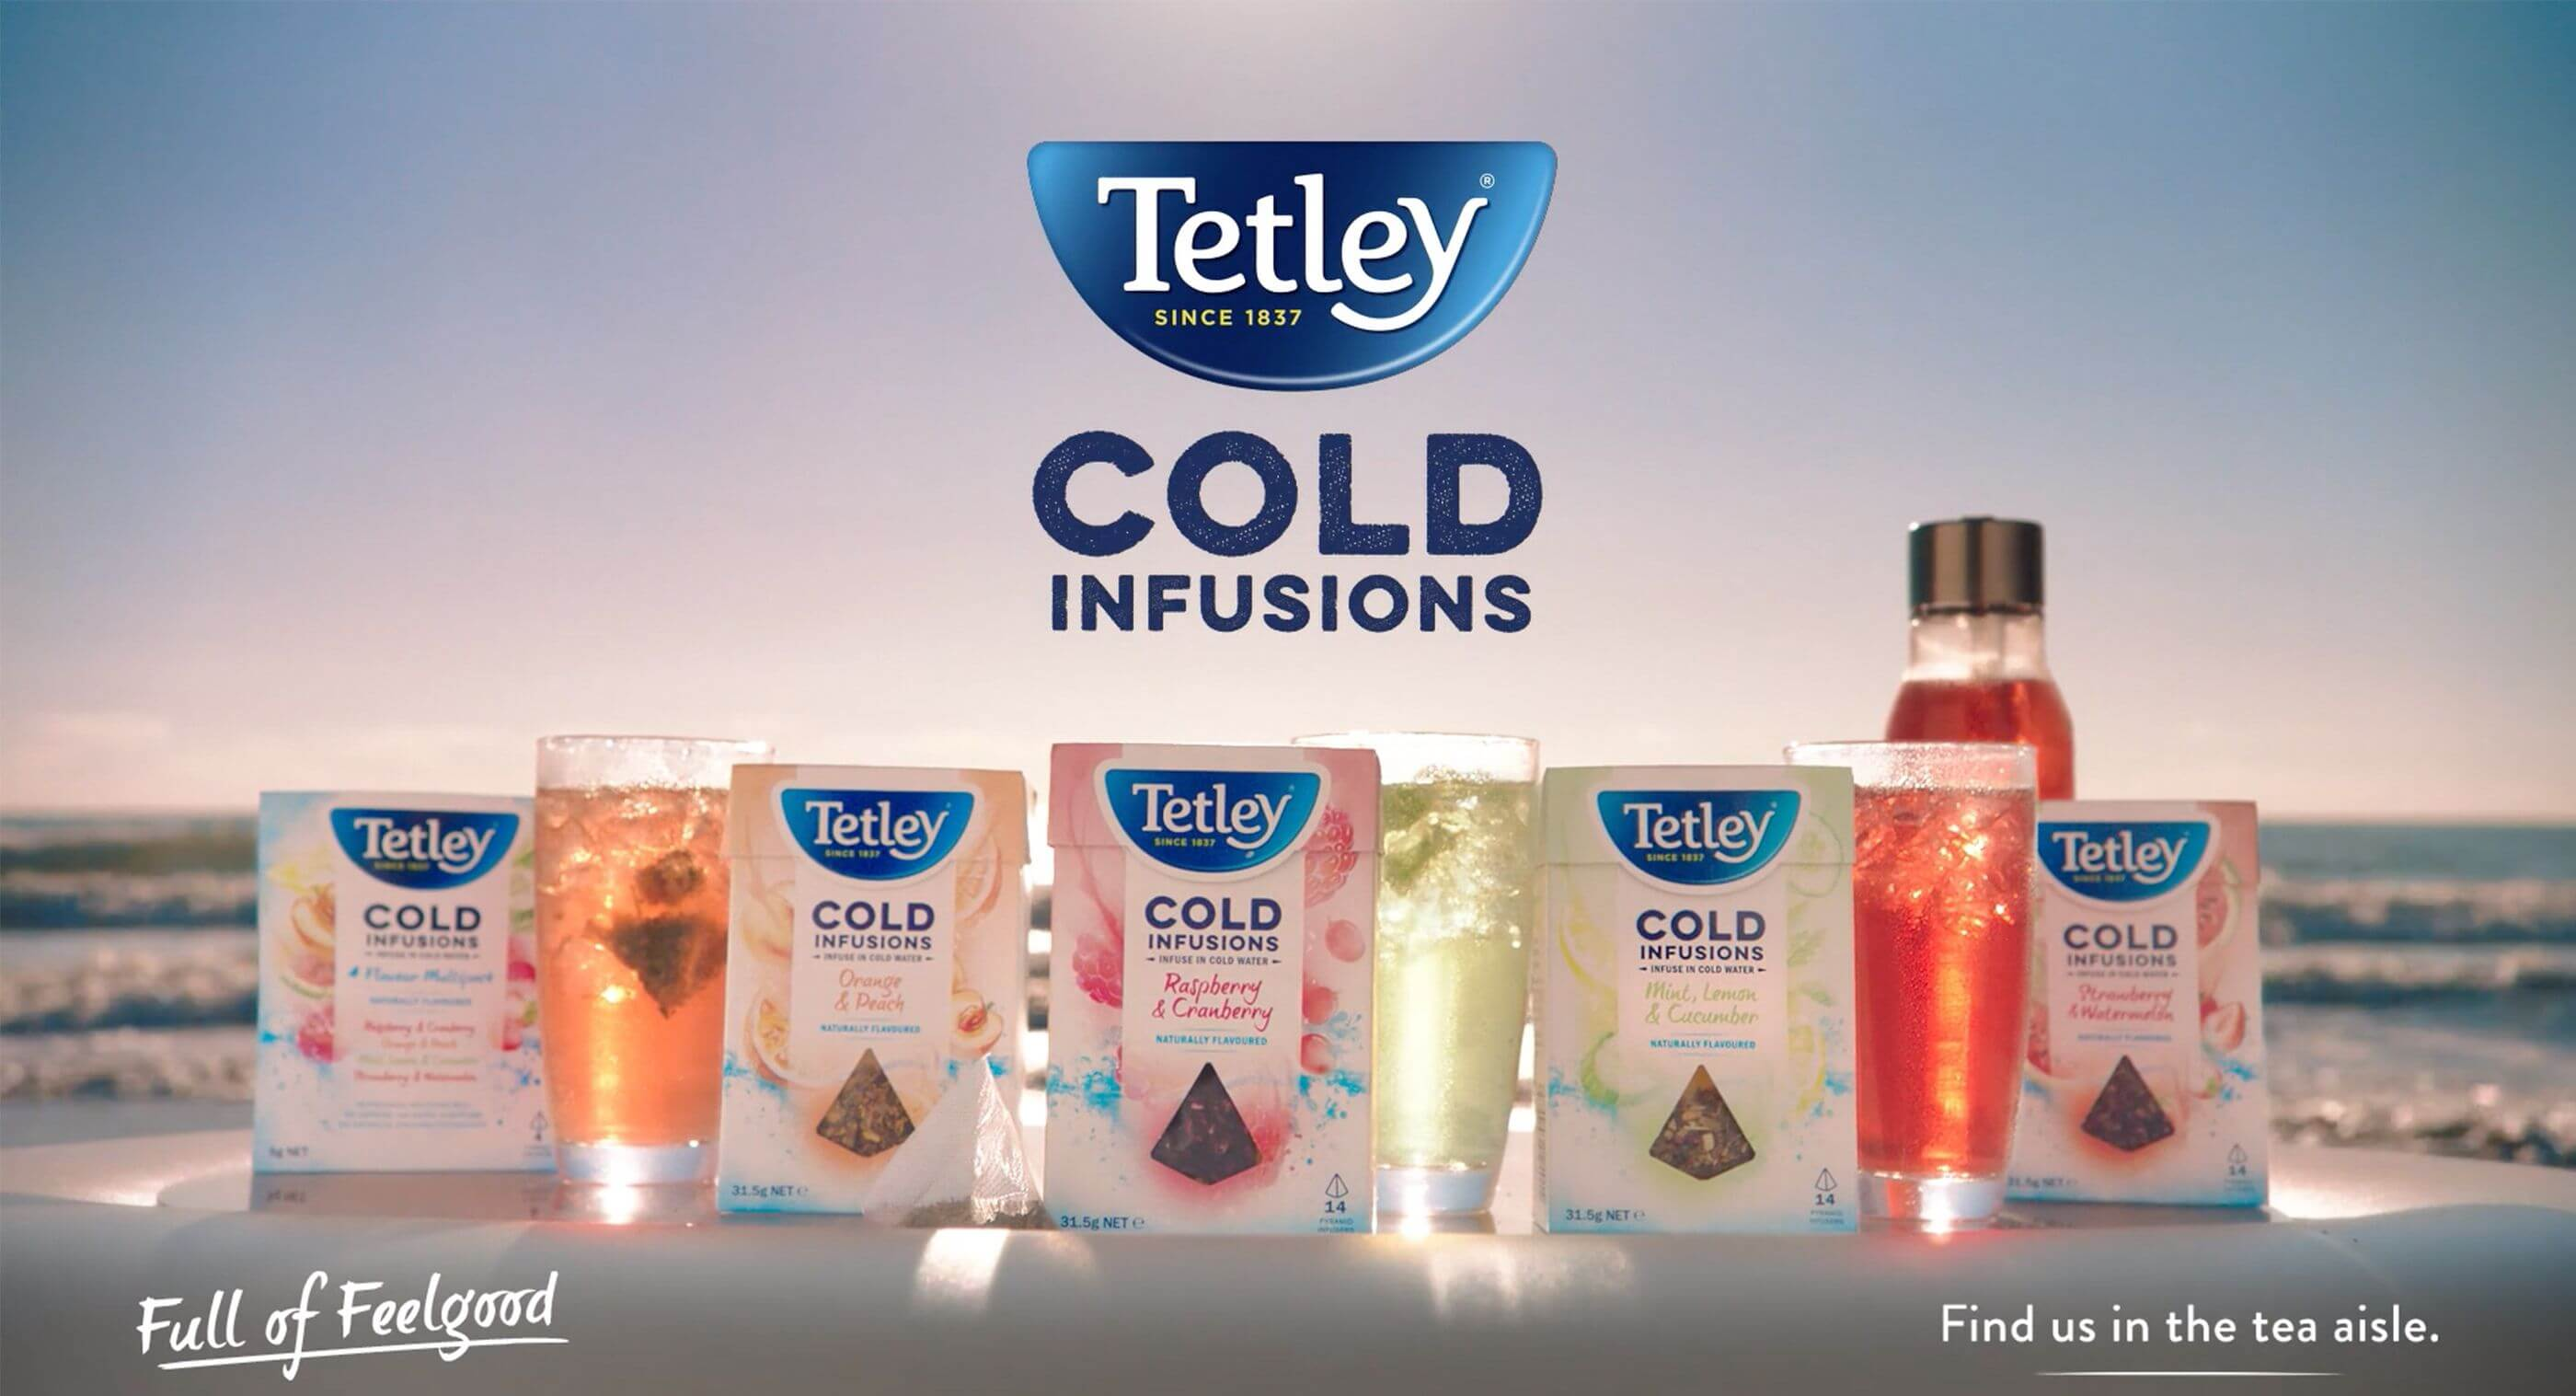 Tetley Cold Infusions. Line up of Tetley tea products.